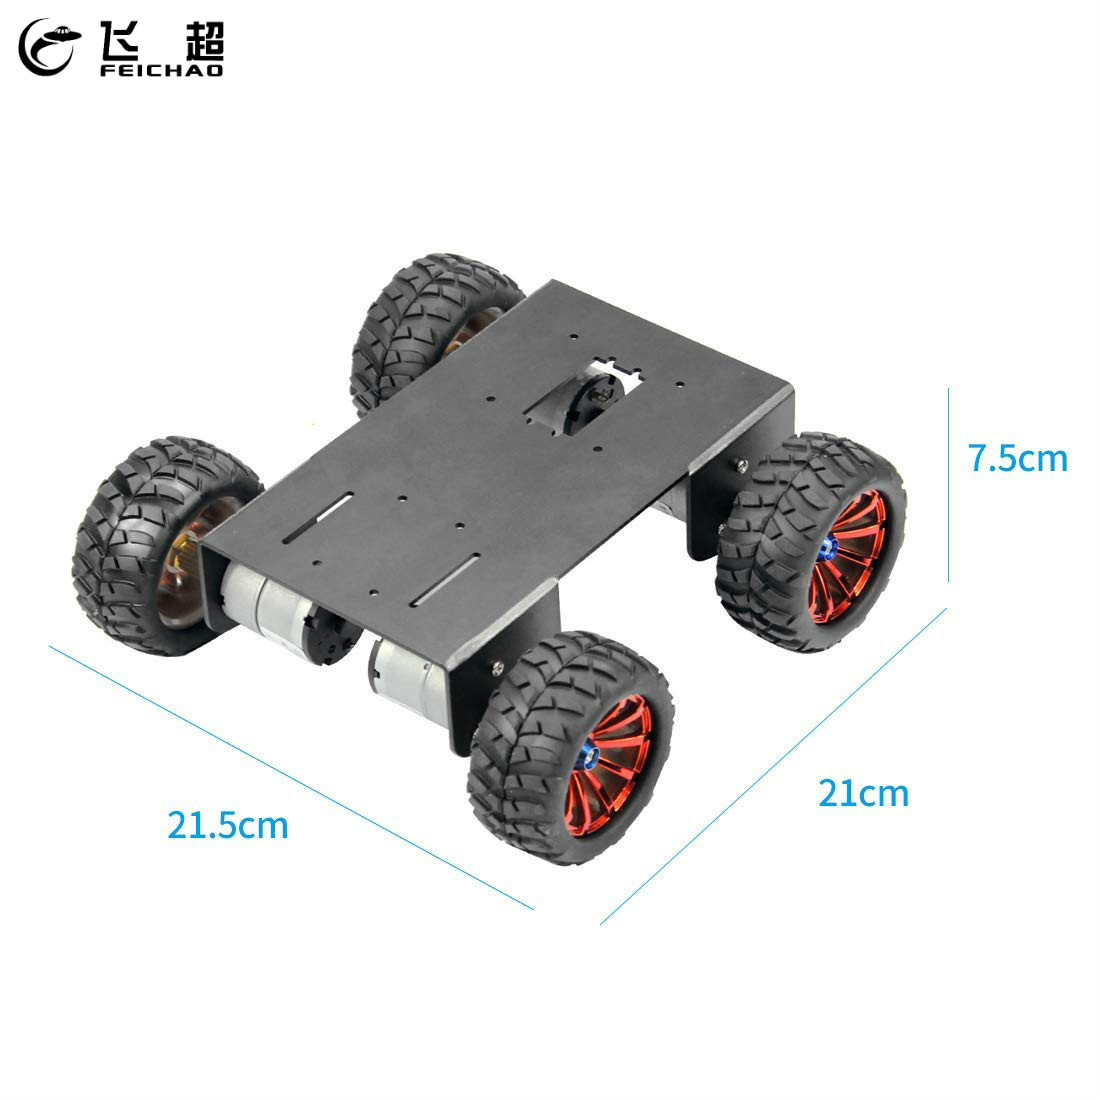 4WD Chassis with 72mm Diameter ABS Wheel 12V DC Metal Motor Accessory